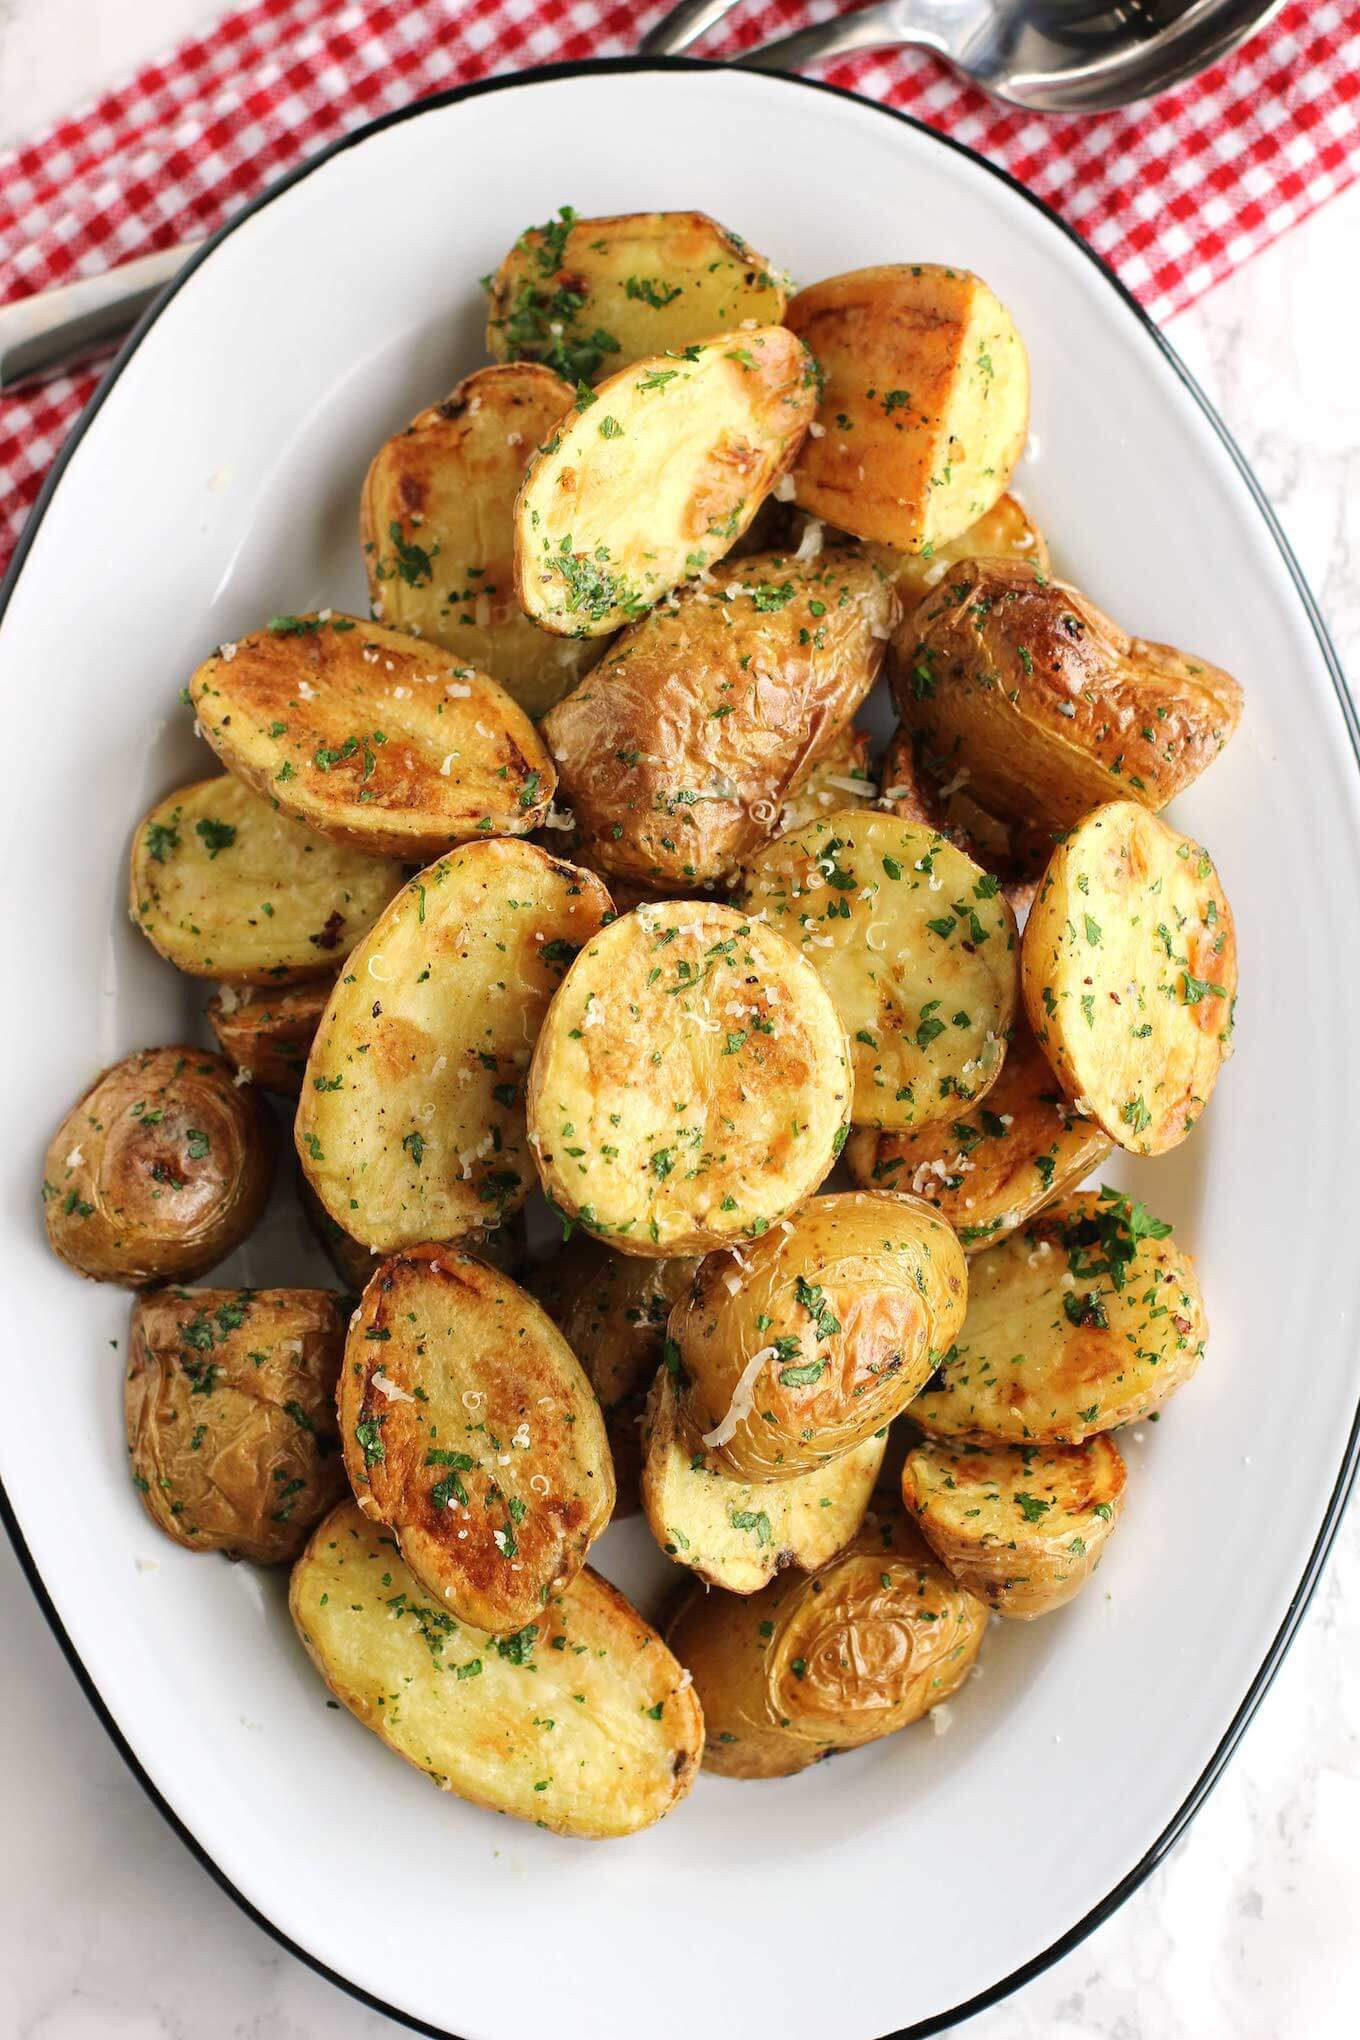 New Potato Recipe  Roasted New Potatoes With Parmesan And Fresh Herbs Green